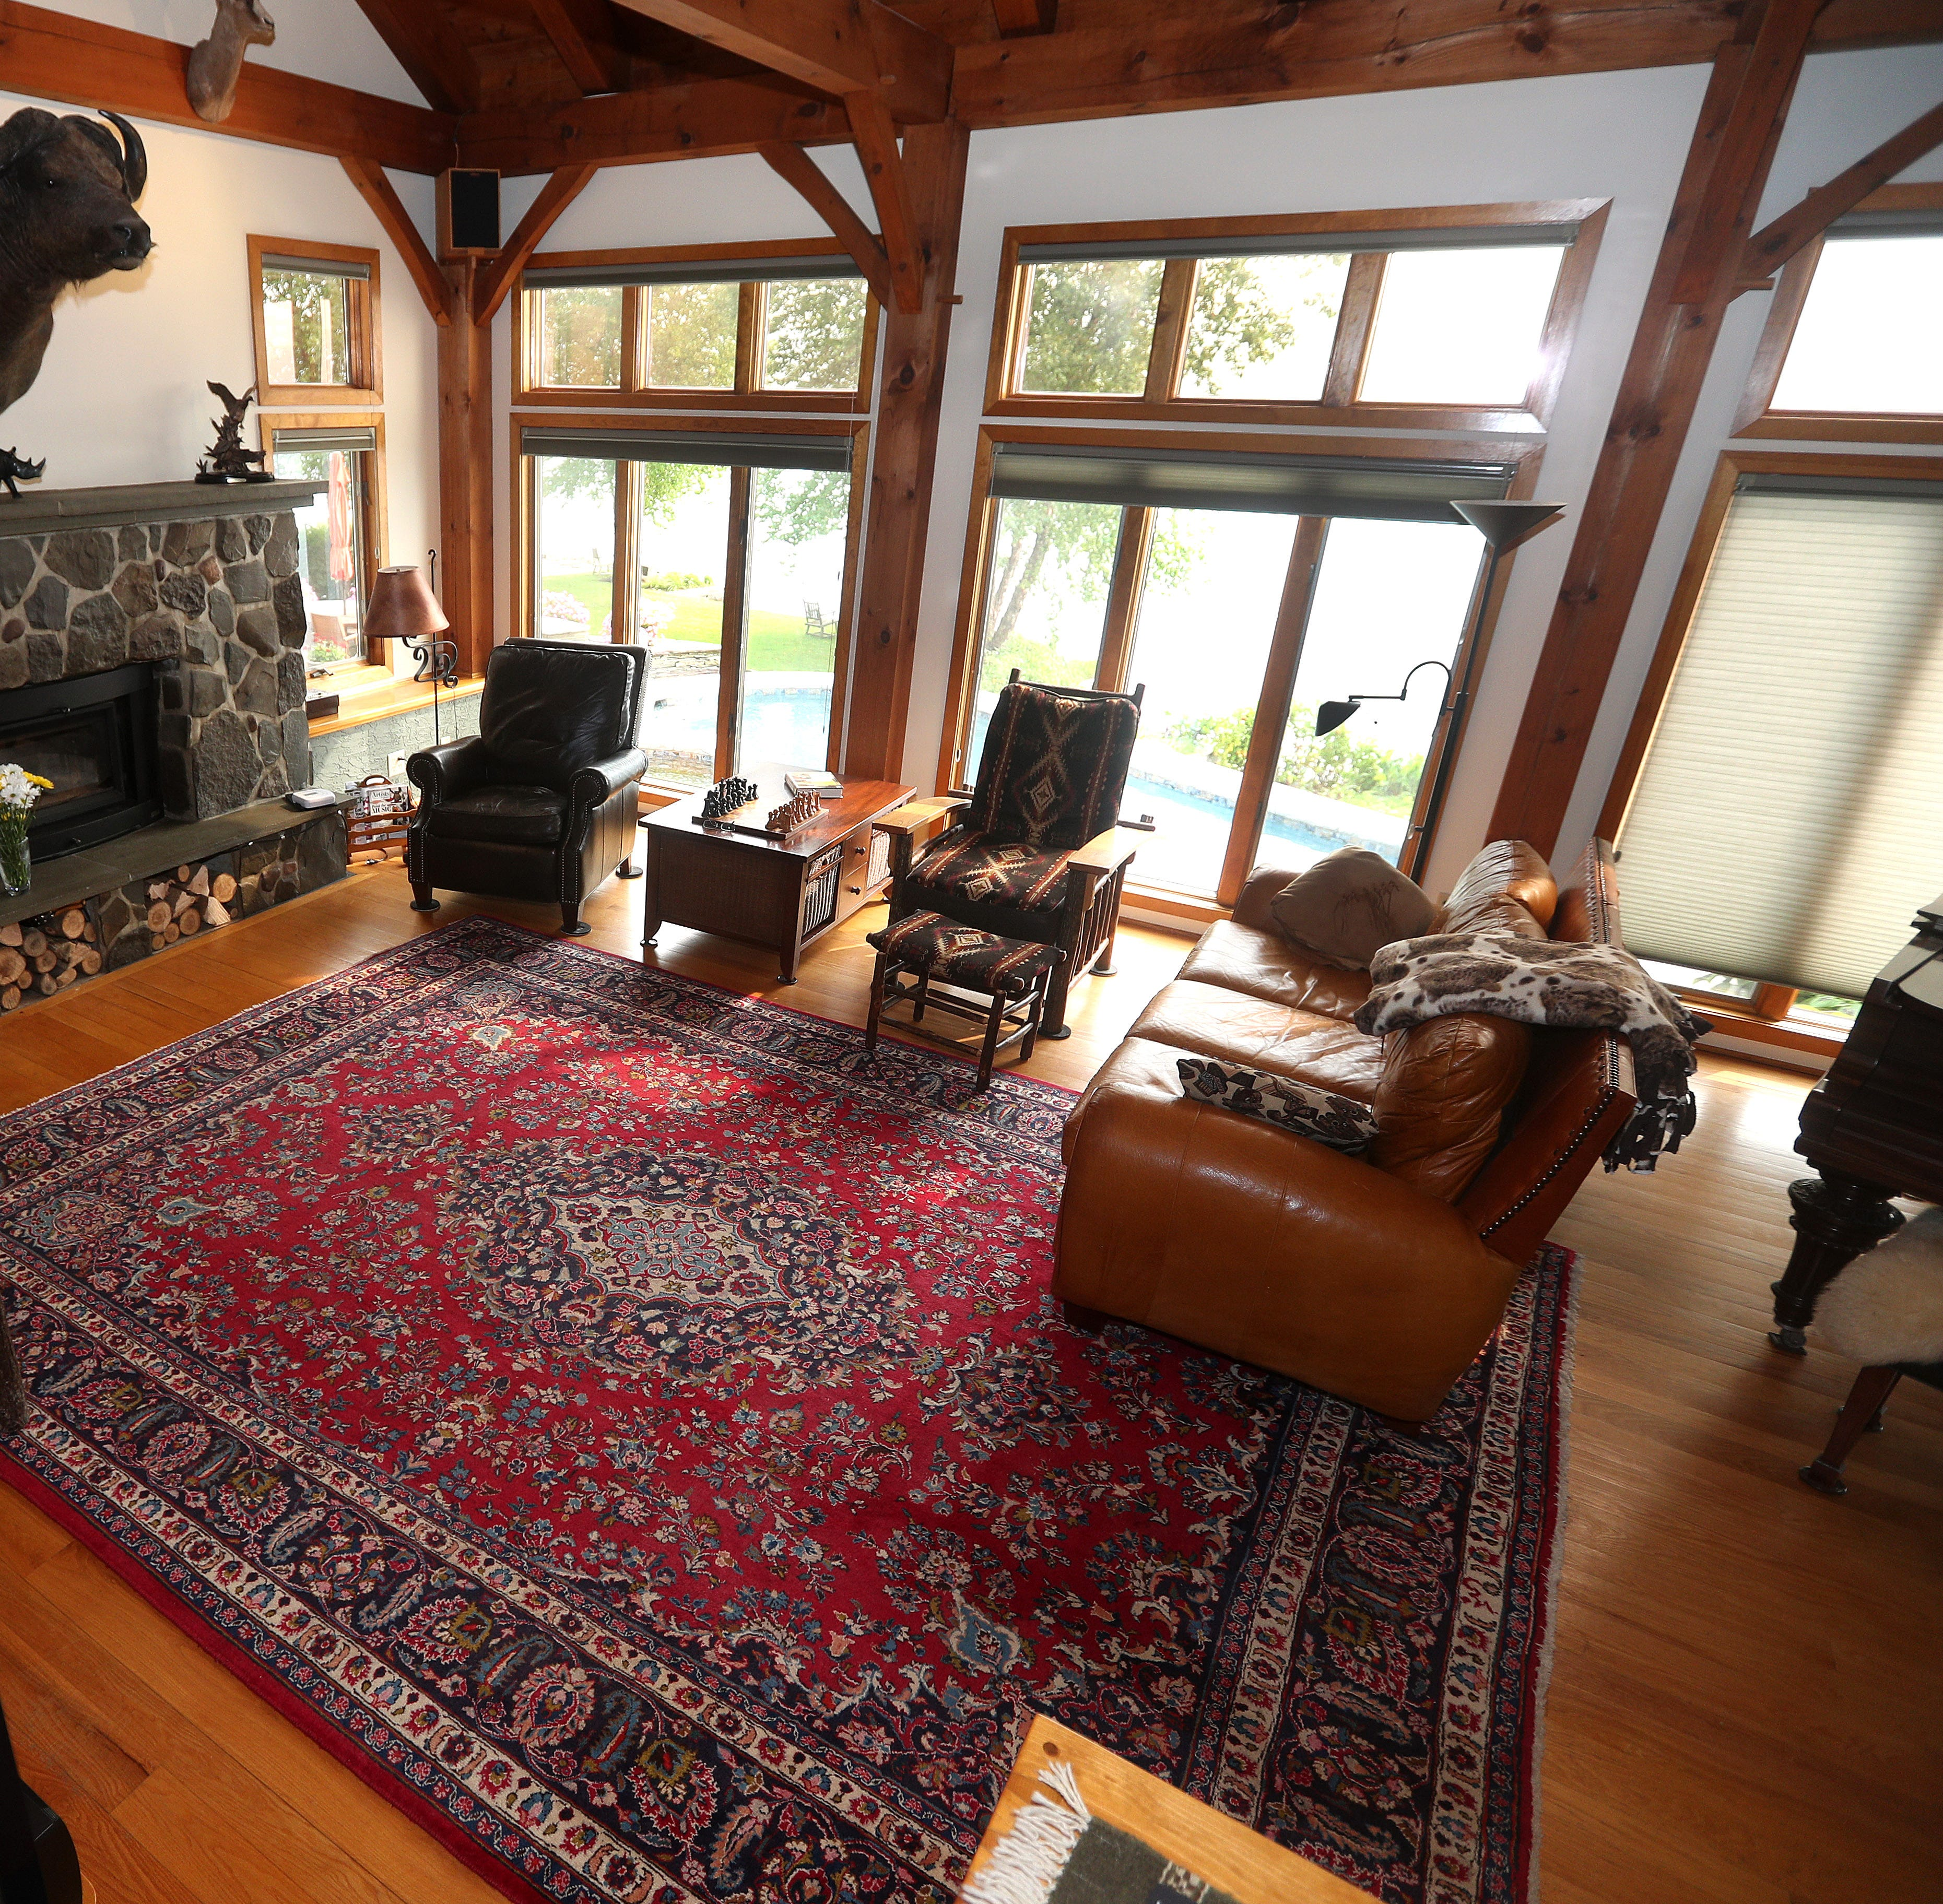 $54K cottage turned into a $2.45M mansion on Seneca Lake, 'Napa Valley of the East'